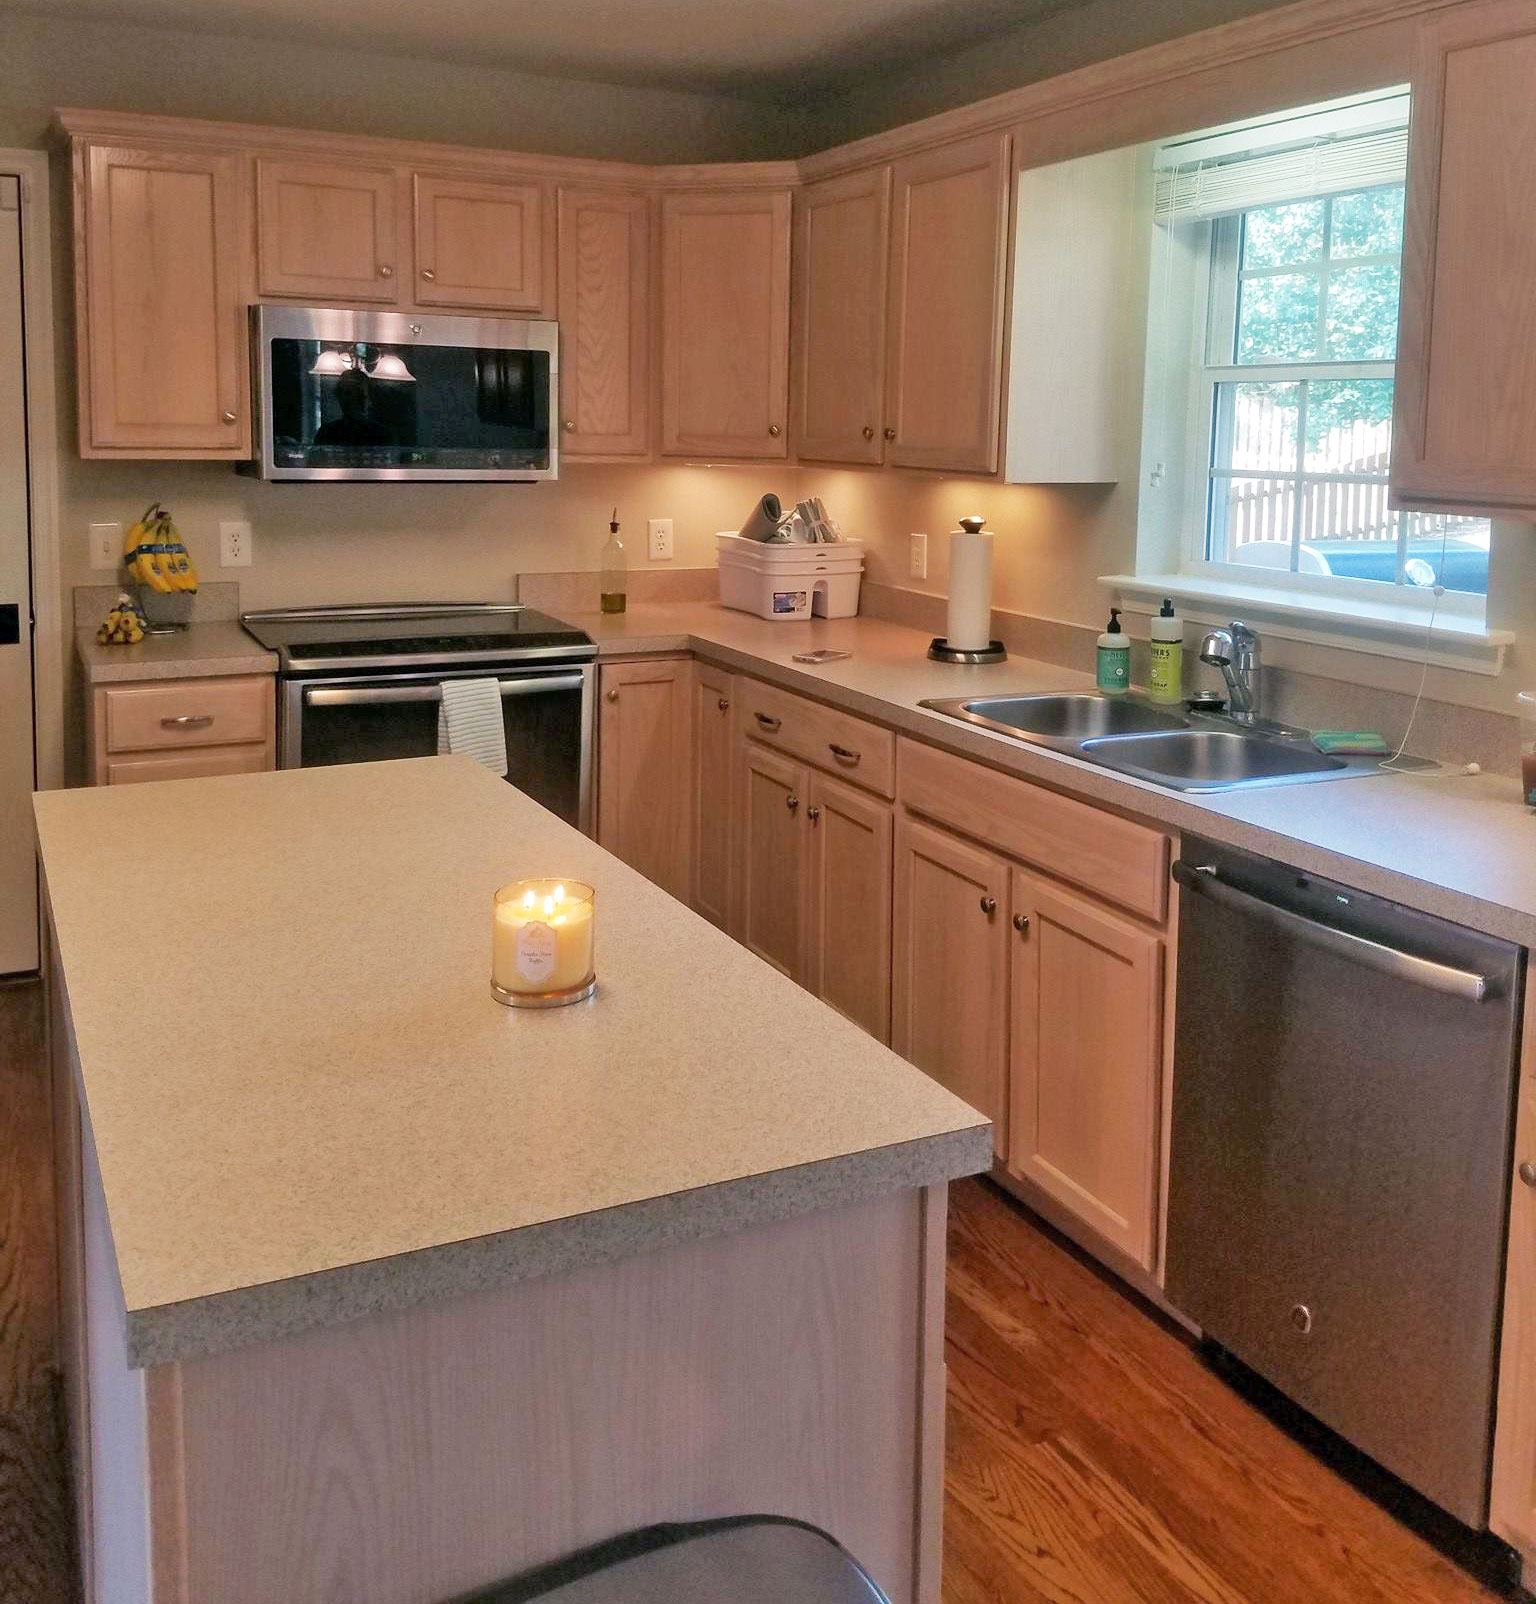 Finishes For Kitchen Cabinets: Snow White Kitchen Cabinet Transformation